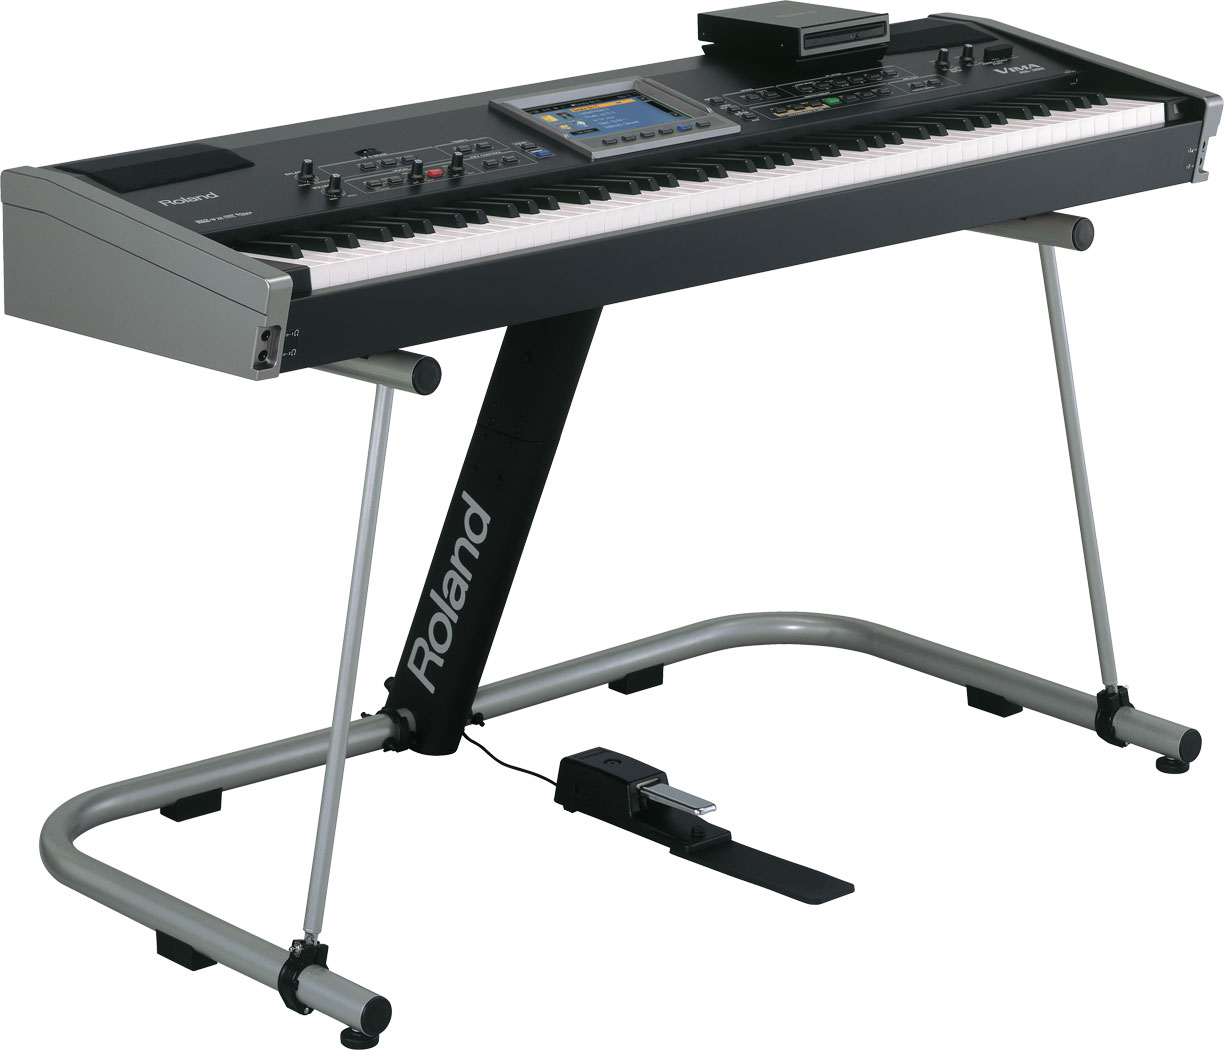 roland rk 300 vima recreational keyboard. Black Bedroom Furniture Sets. Home Design Ideas